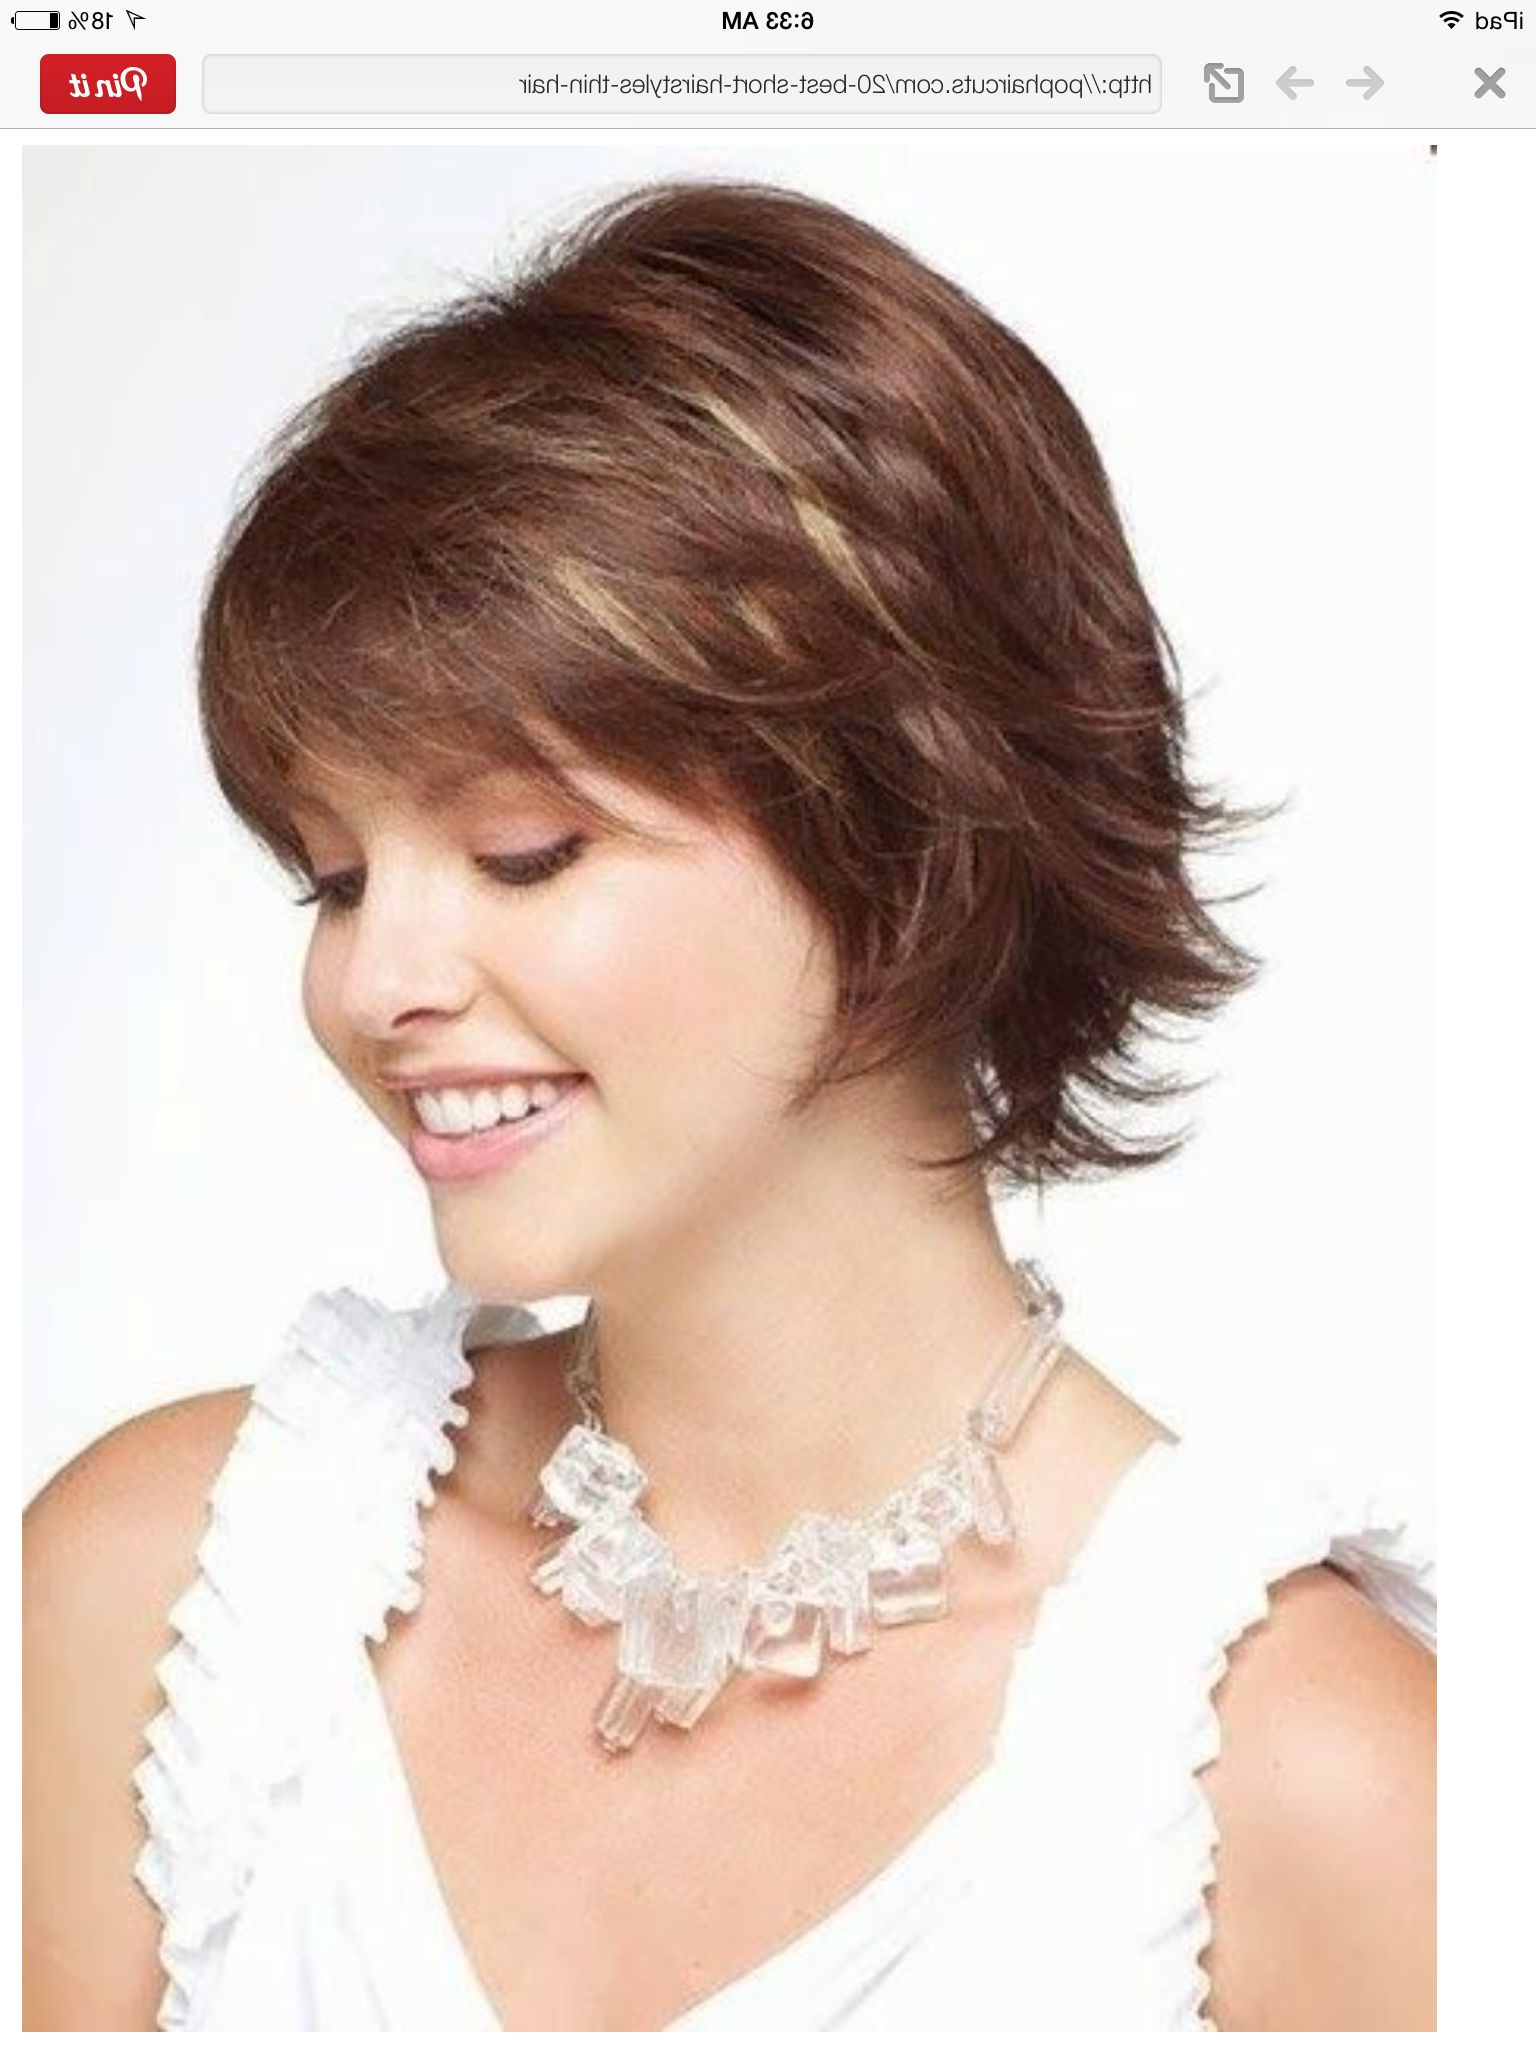 Short Hairstyle | Short Hairstyles | Pinterest | Short Hairstyle With Cute Short Haircuts For Thin Hair (View 24 of 25)